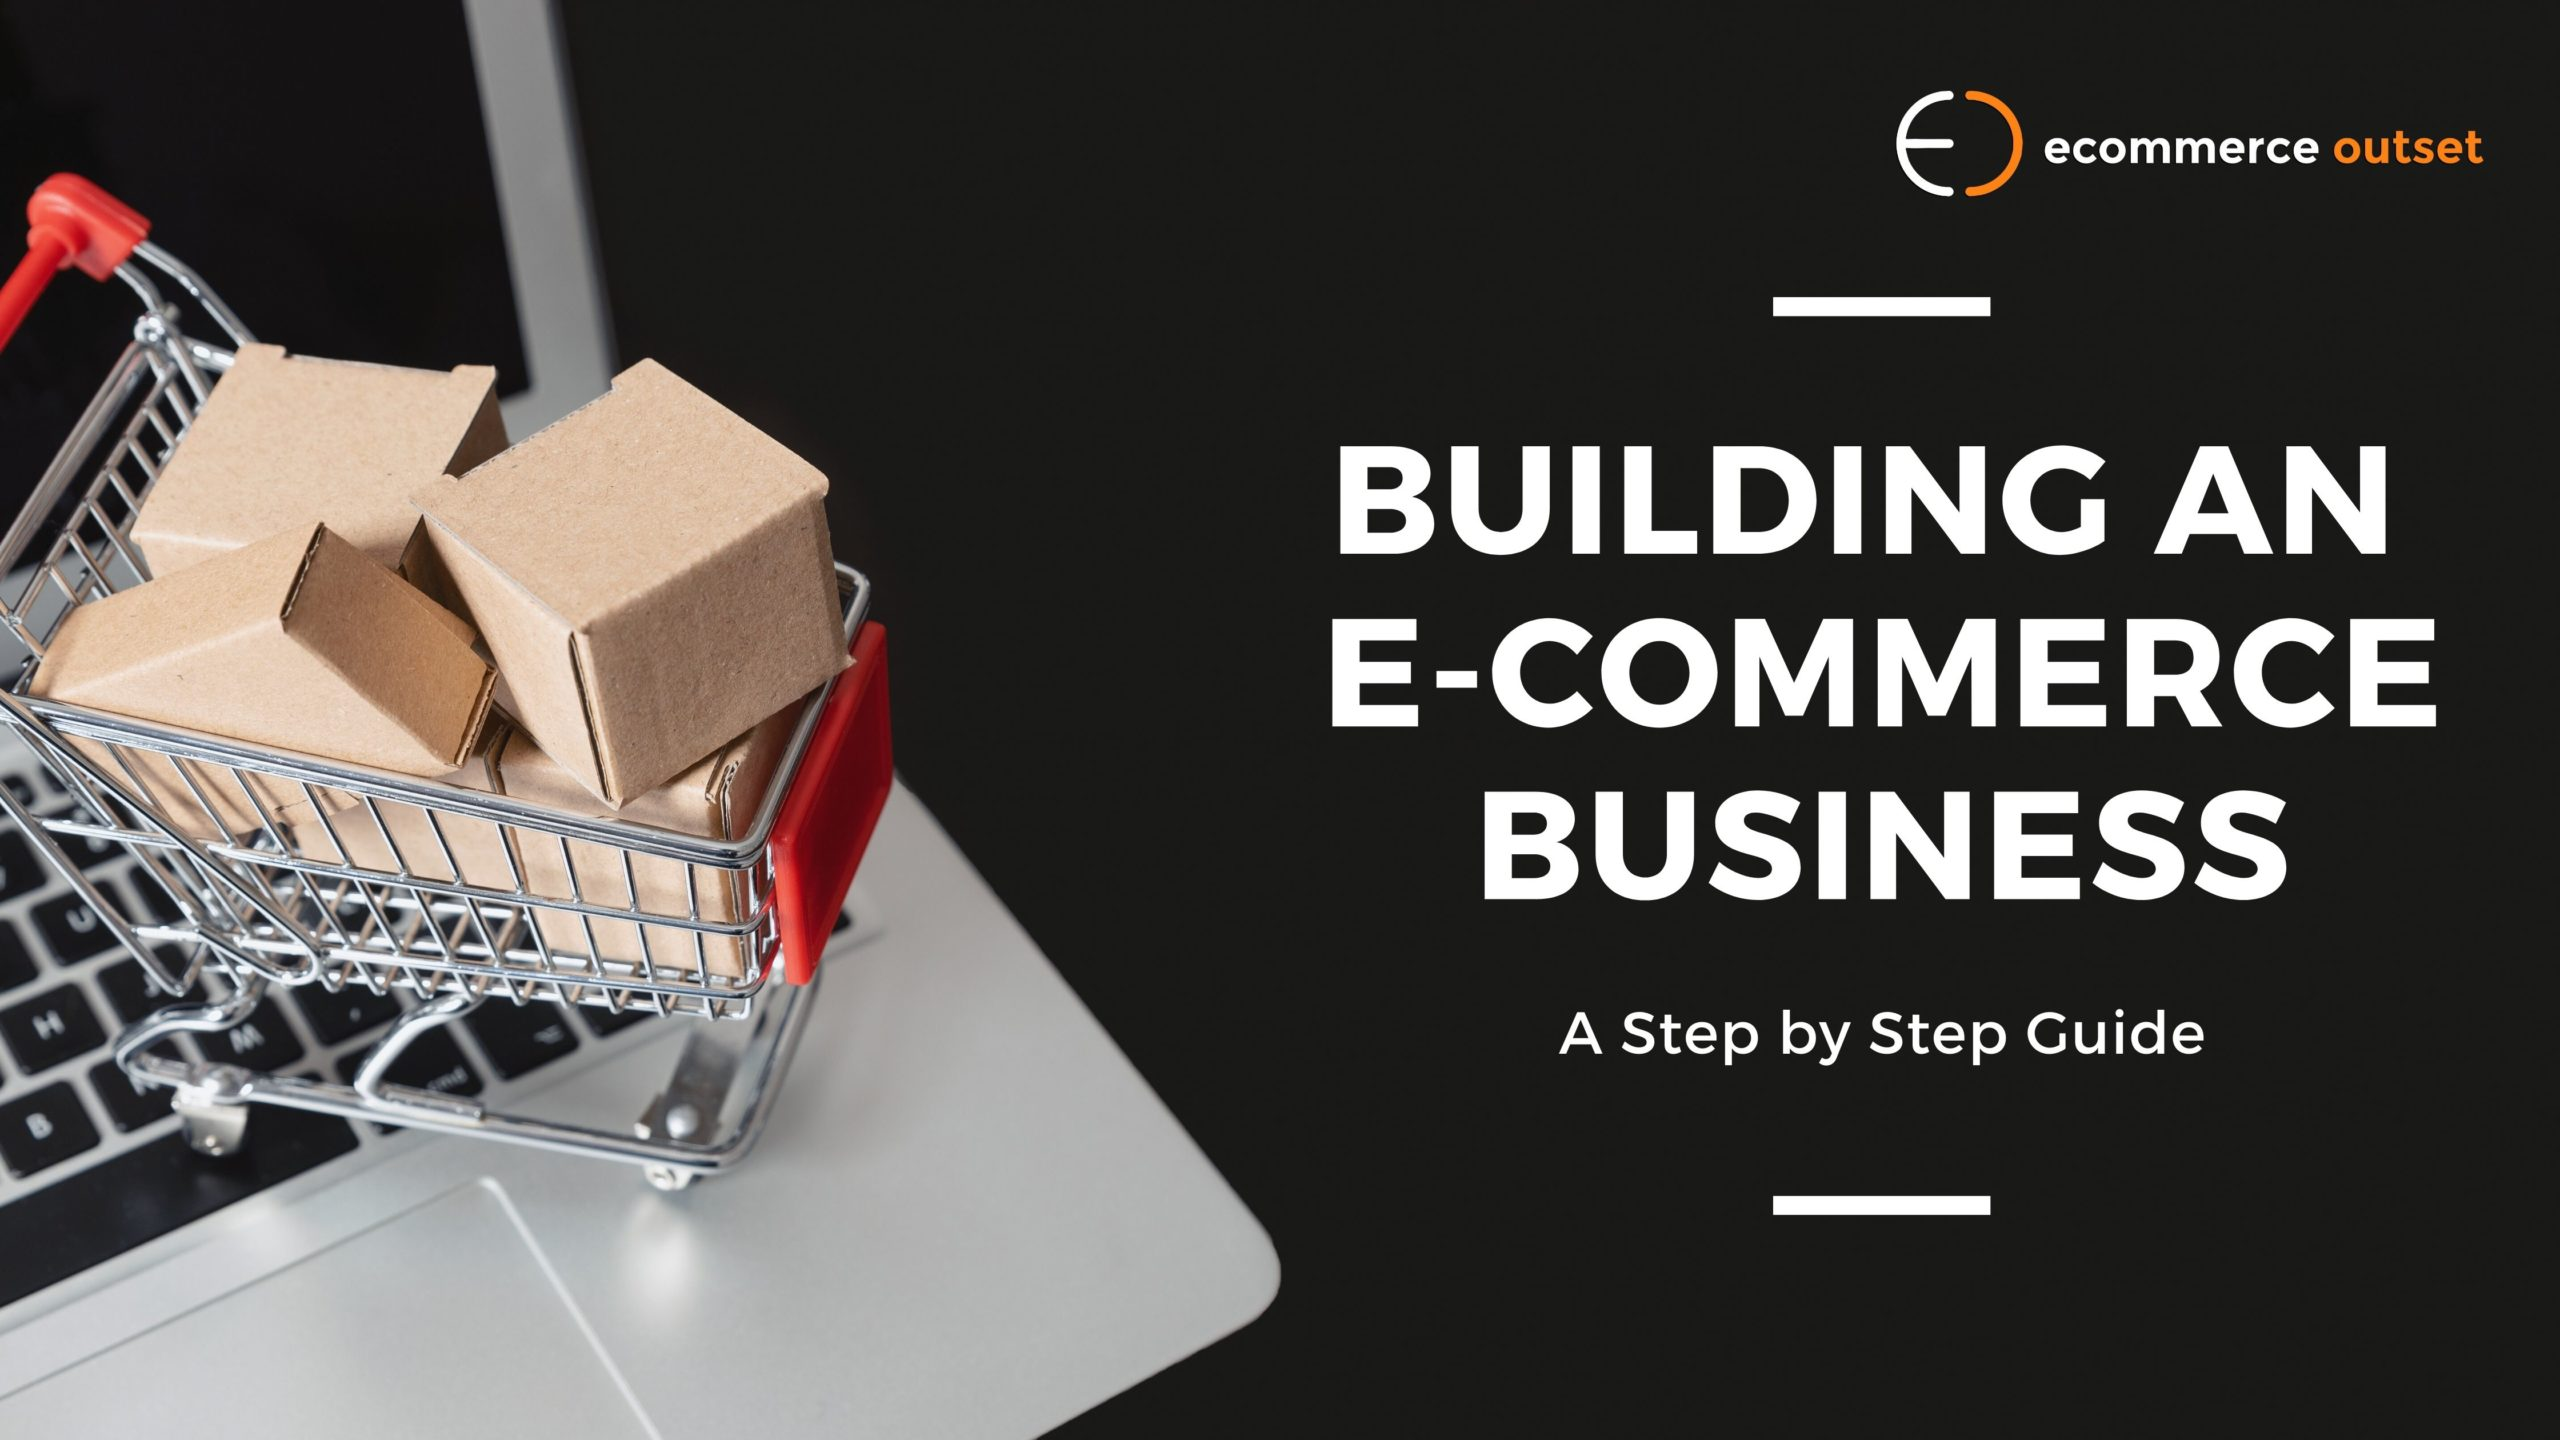 How To Build an Ecommerce Business From Scratch